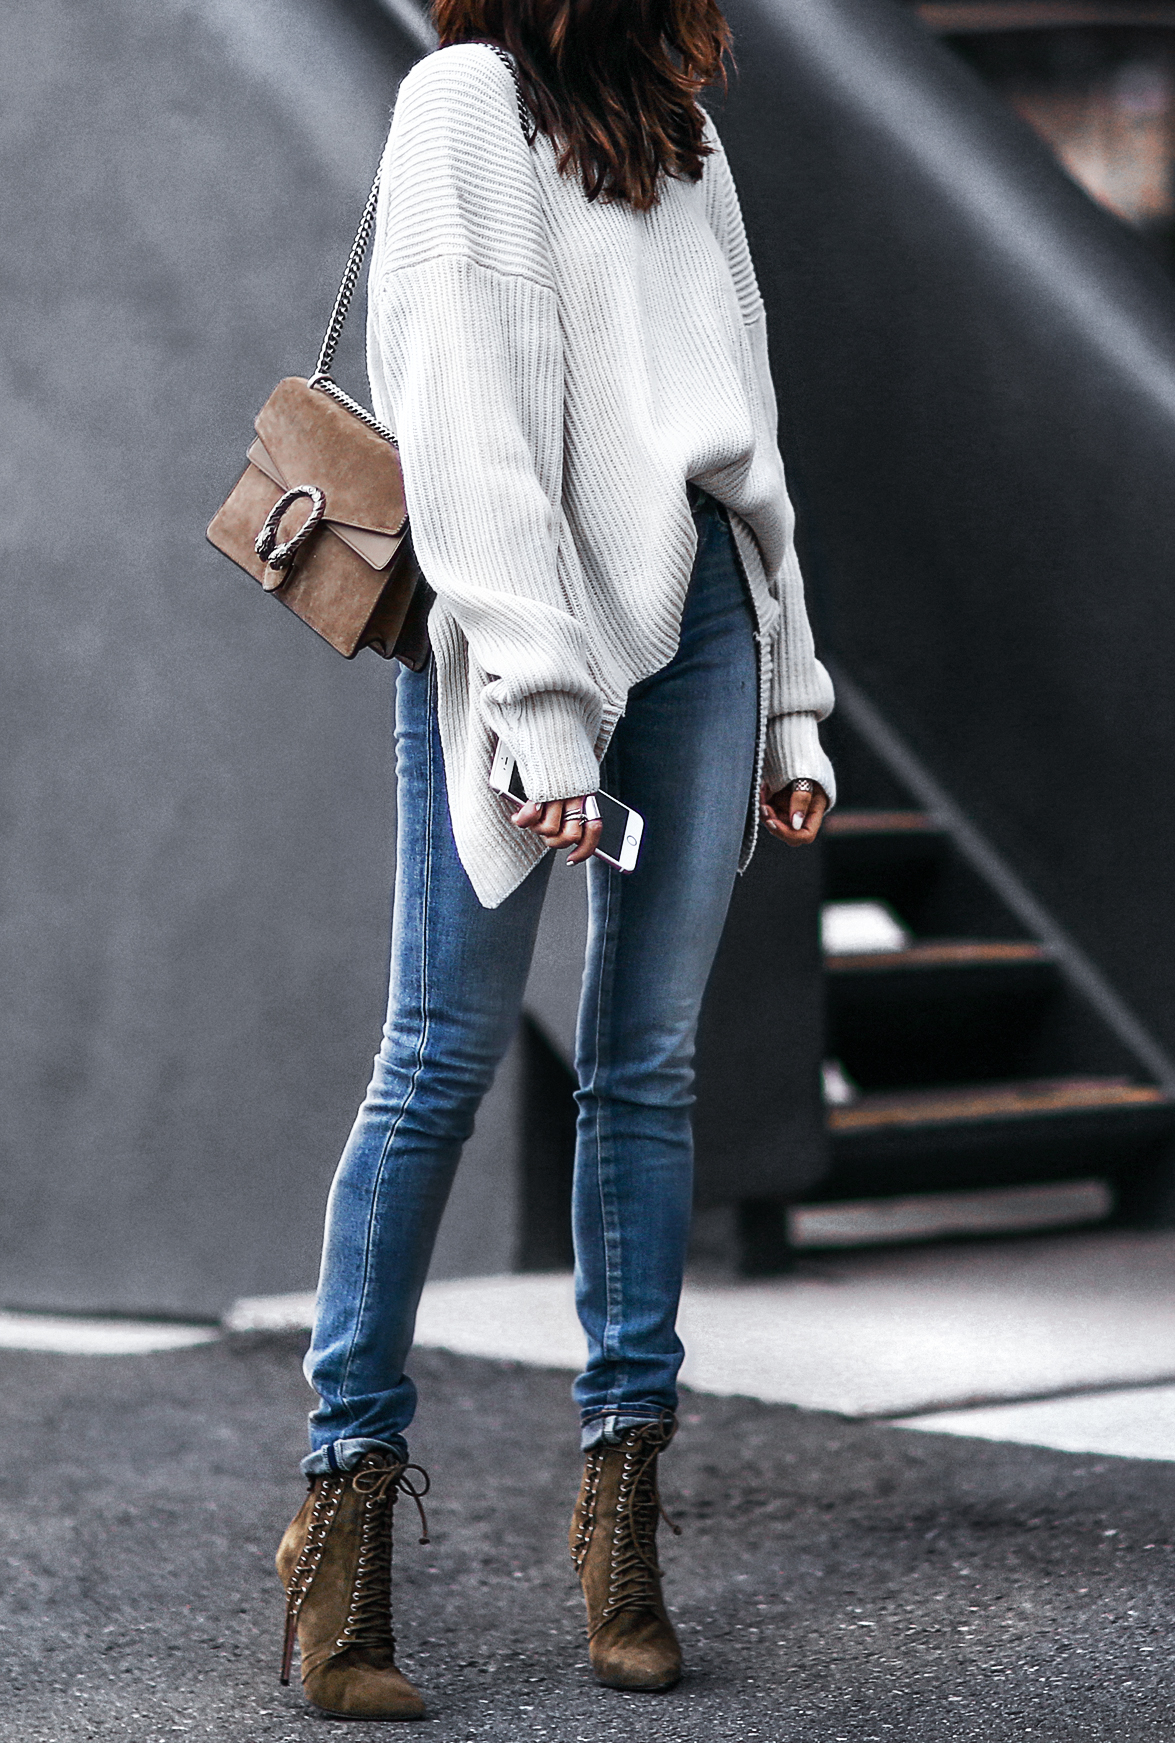 slouchy oversized sweater, skinny jeans, and lace up booties